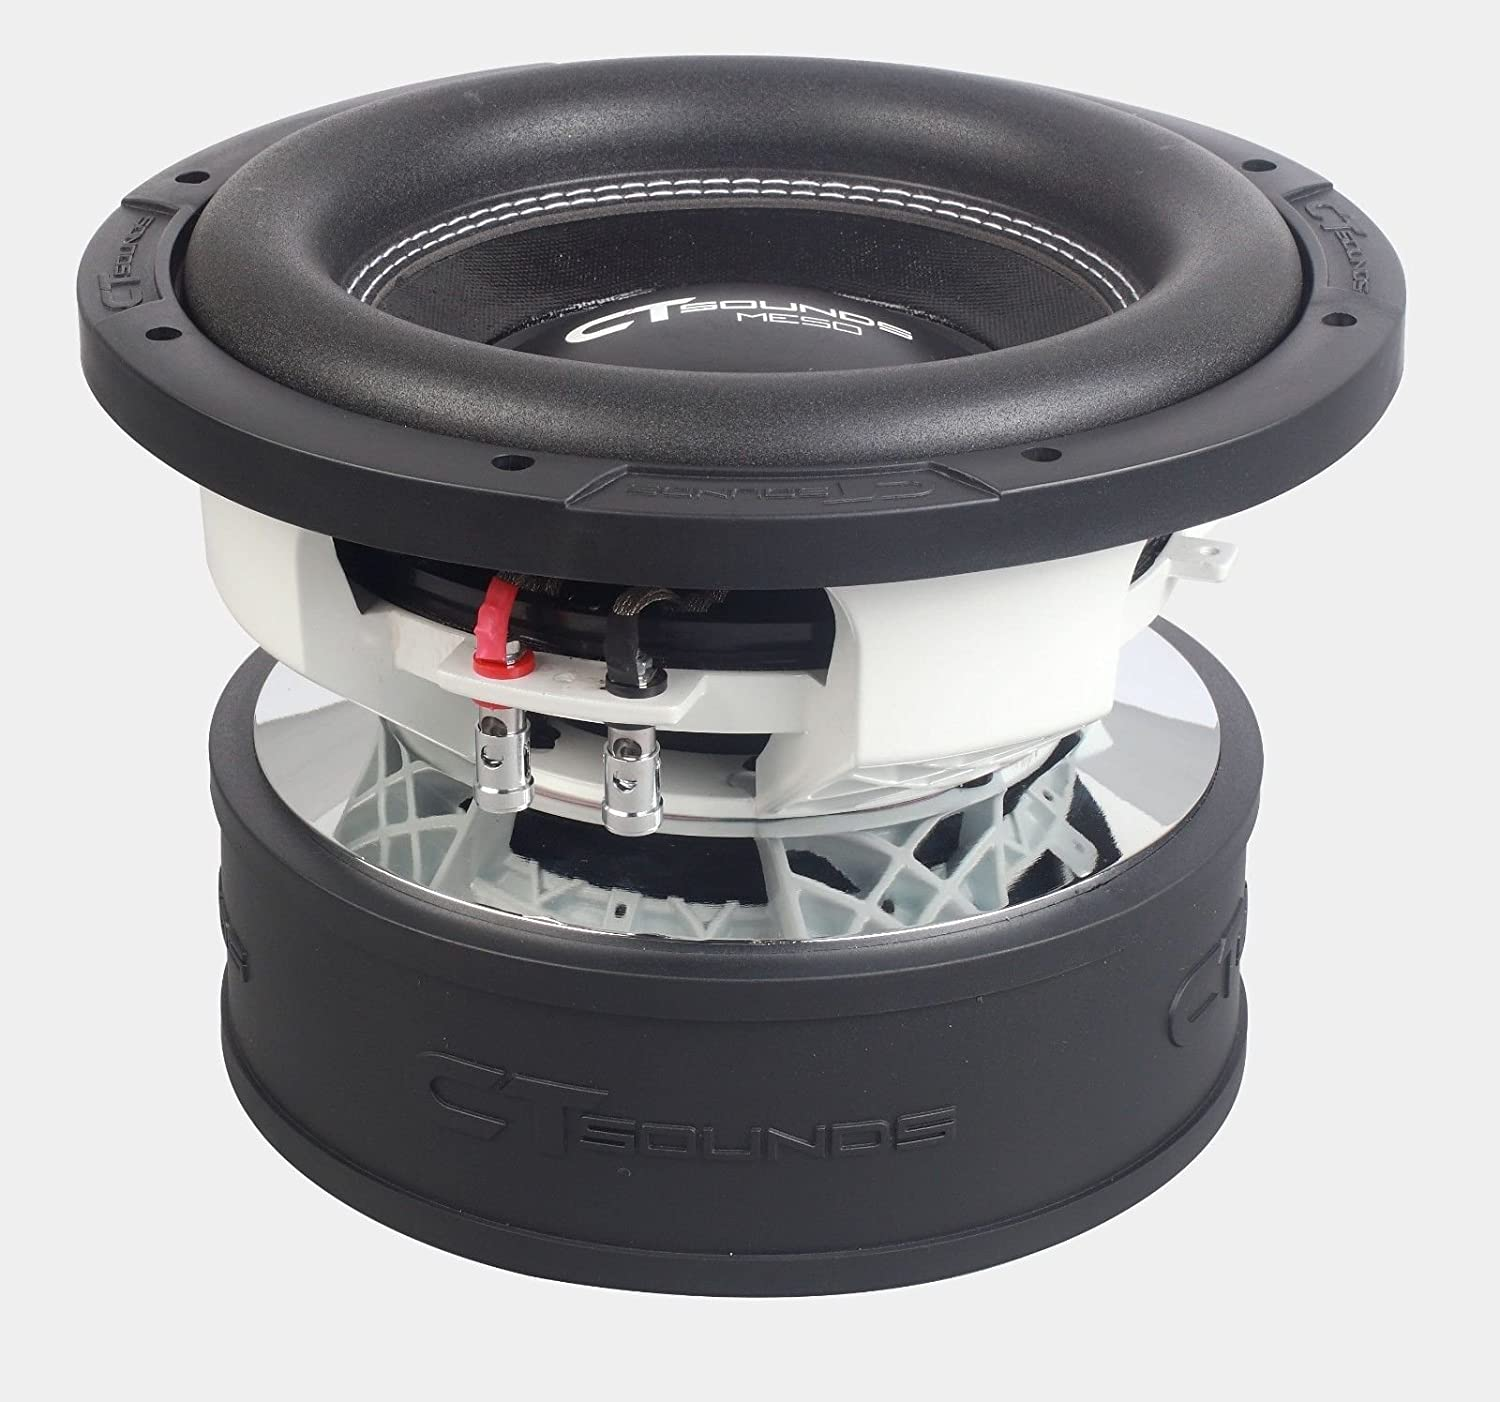 Amazon.com: CT Sounds Meso 10 Inch Car Subwoofer 1500w RMS Dual 2 ...